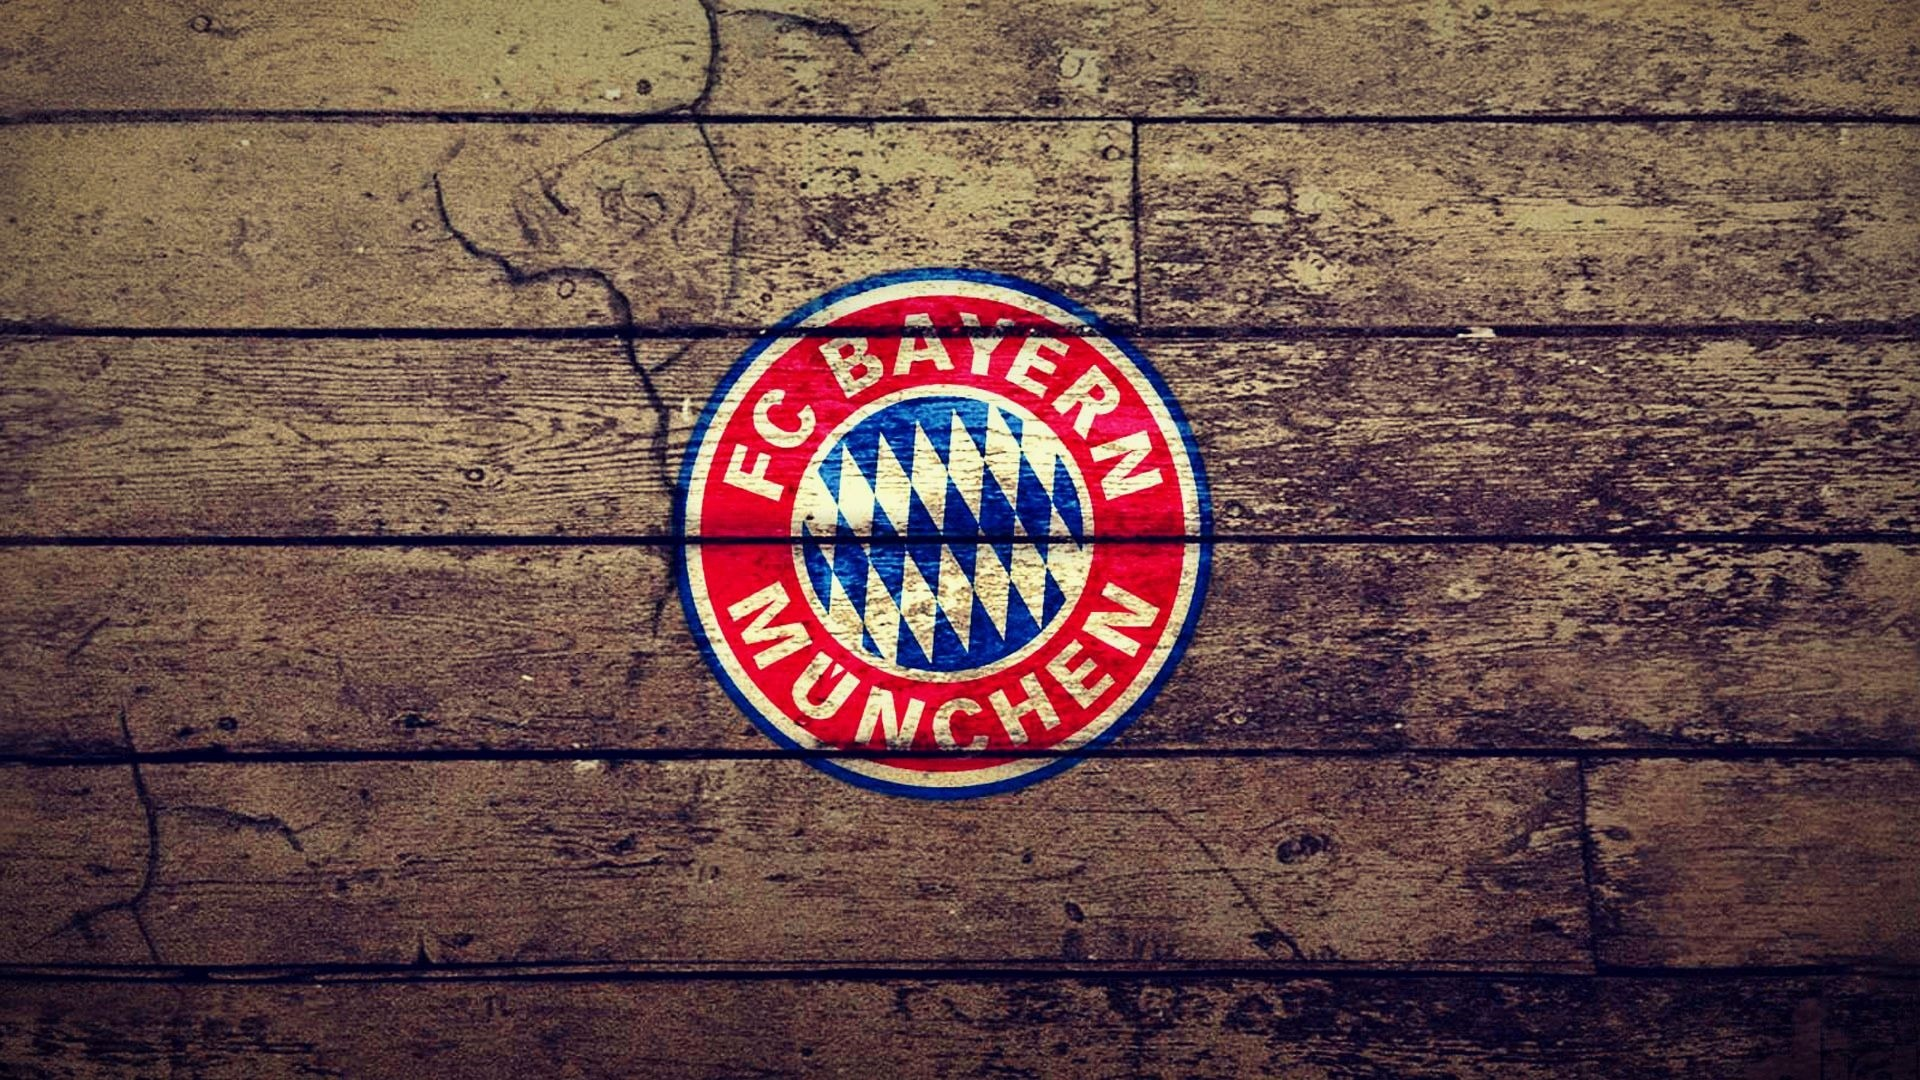 Bayern Munich download free wallpaper for pc in hd